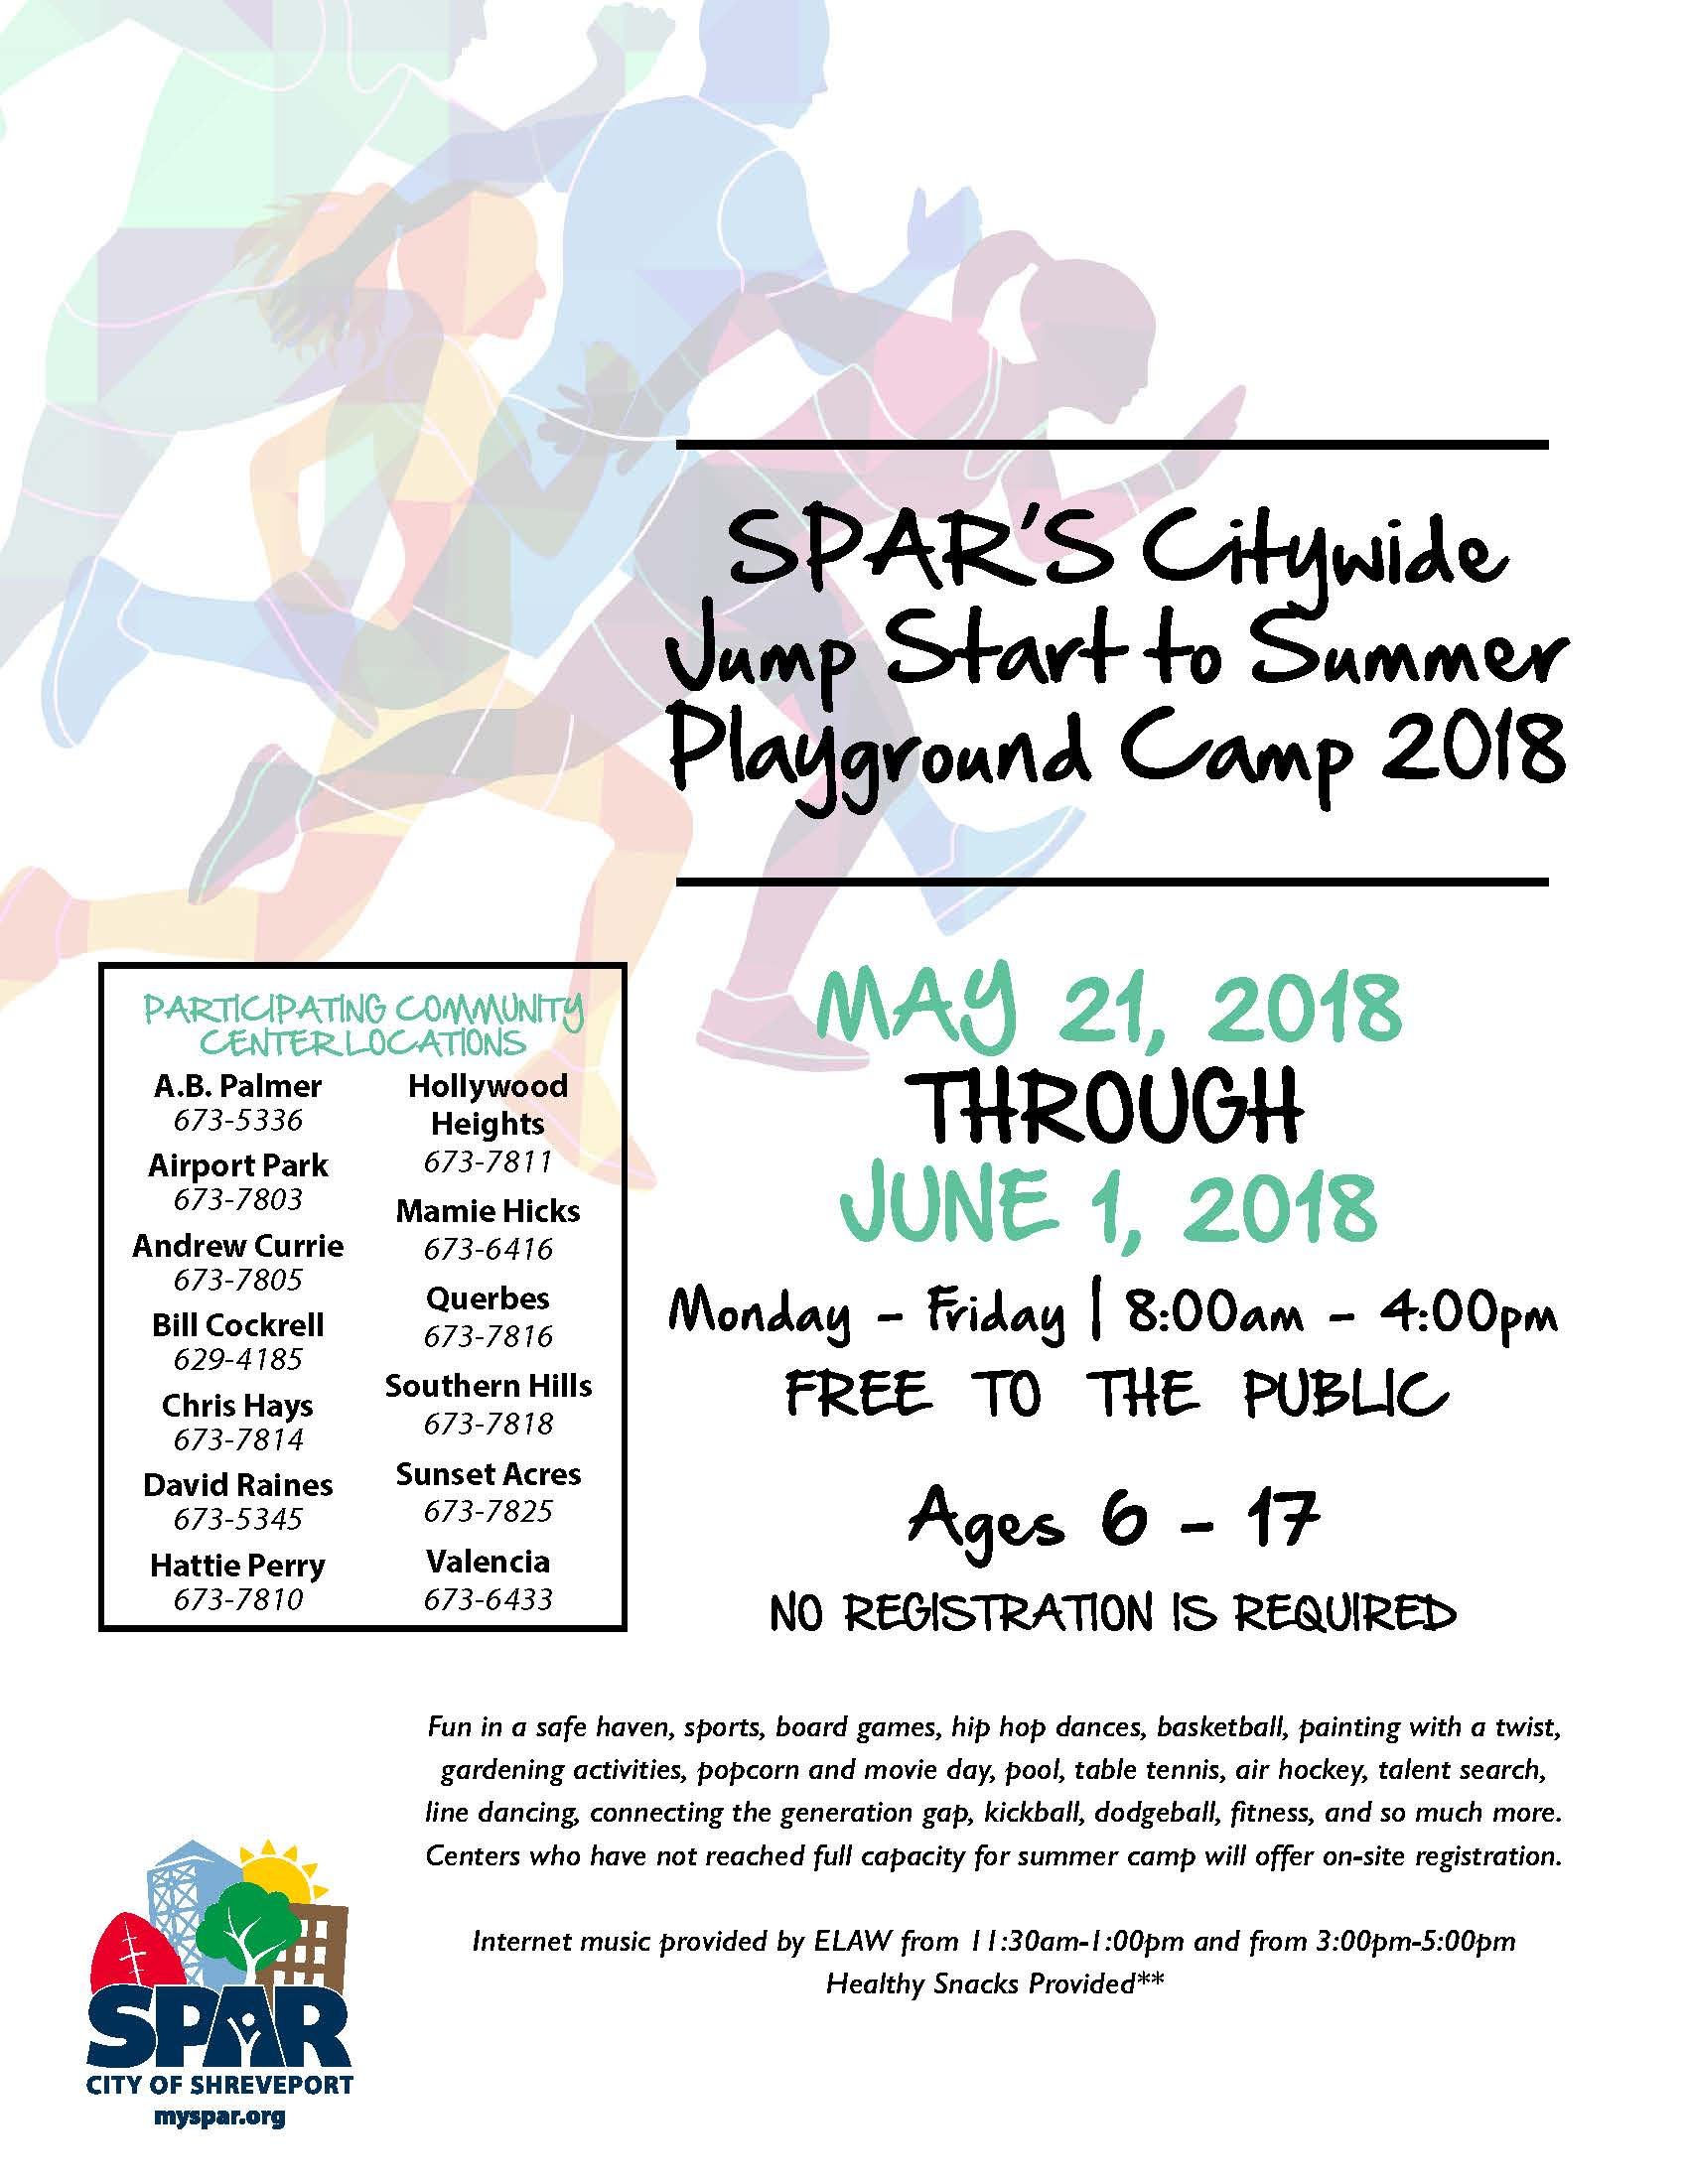 SPAR CC Pre-Summer Camp 2018 Flyer